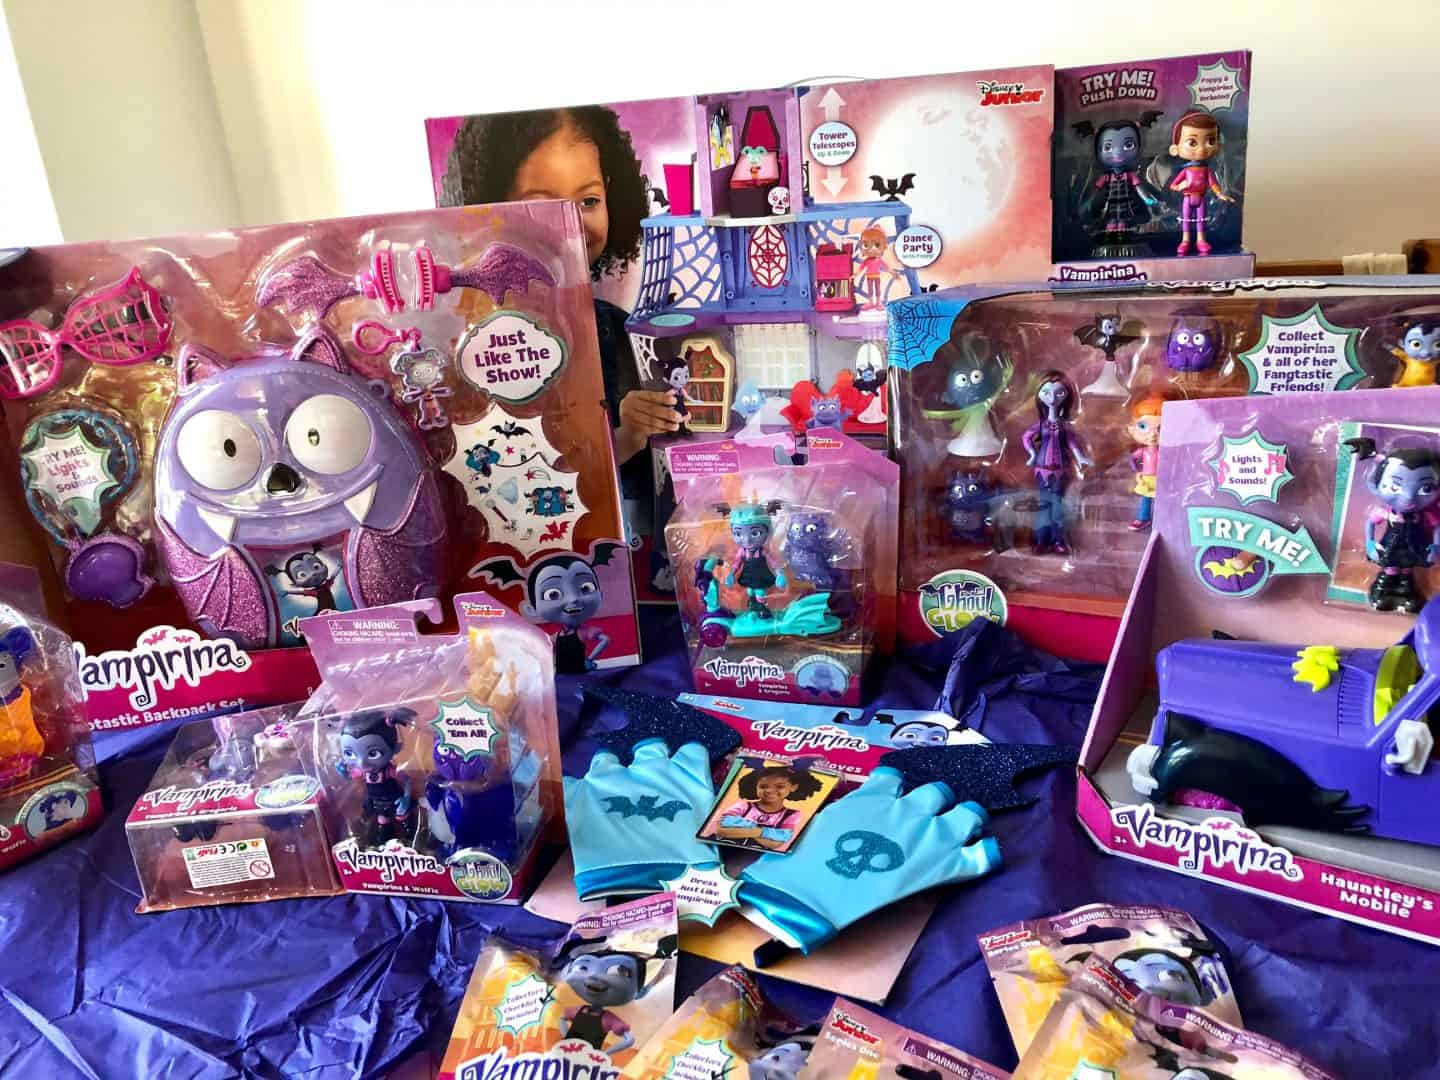 Vampirina Toy Collection Review